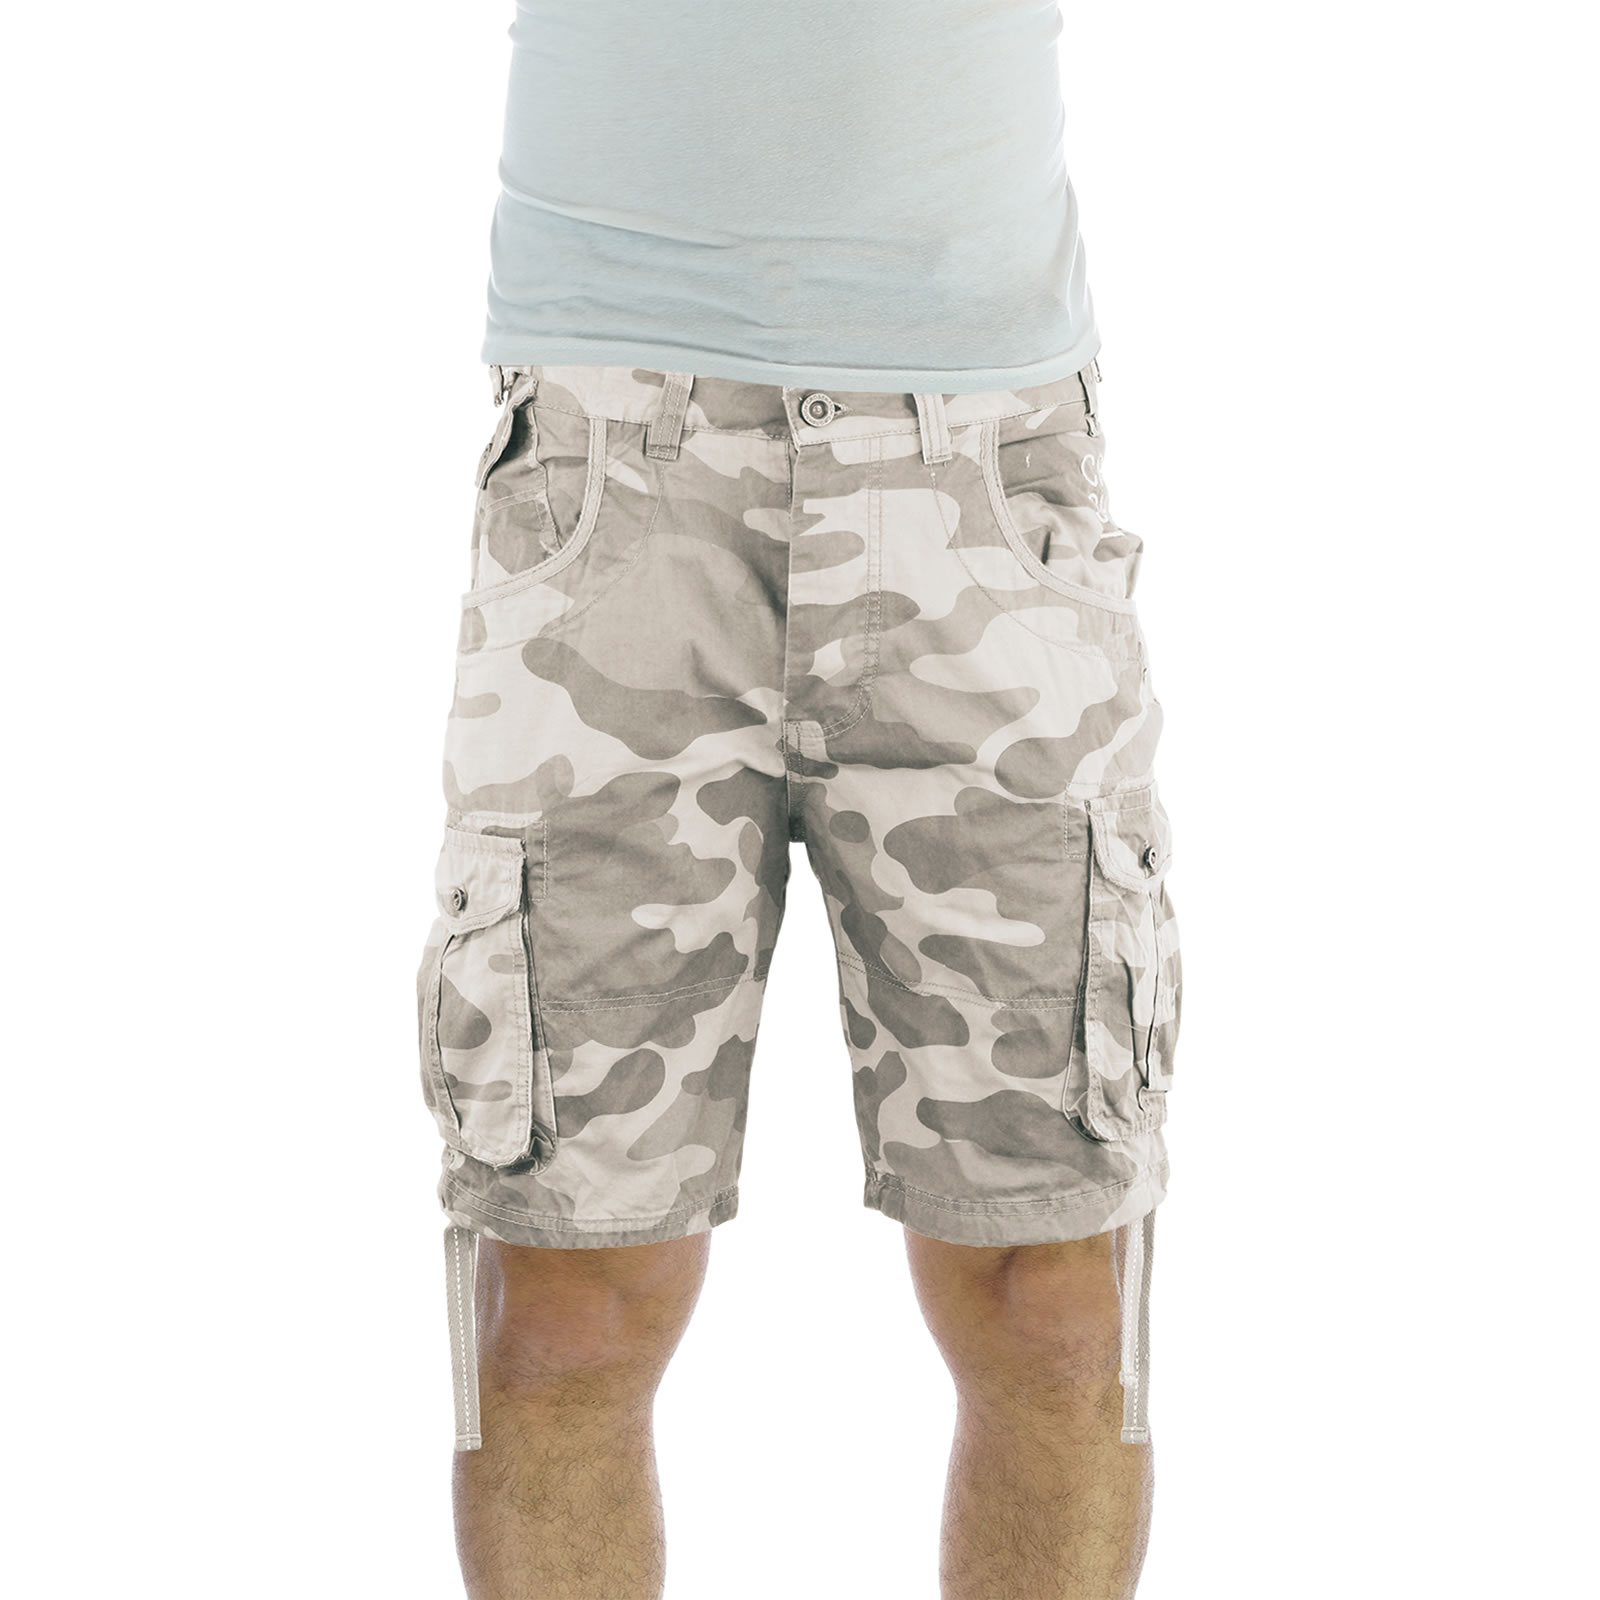 Mens Cargo Shorts Crosshatch Crossfin Camo Army Camouflage Print ...